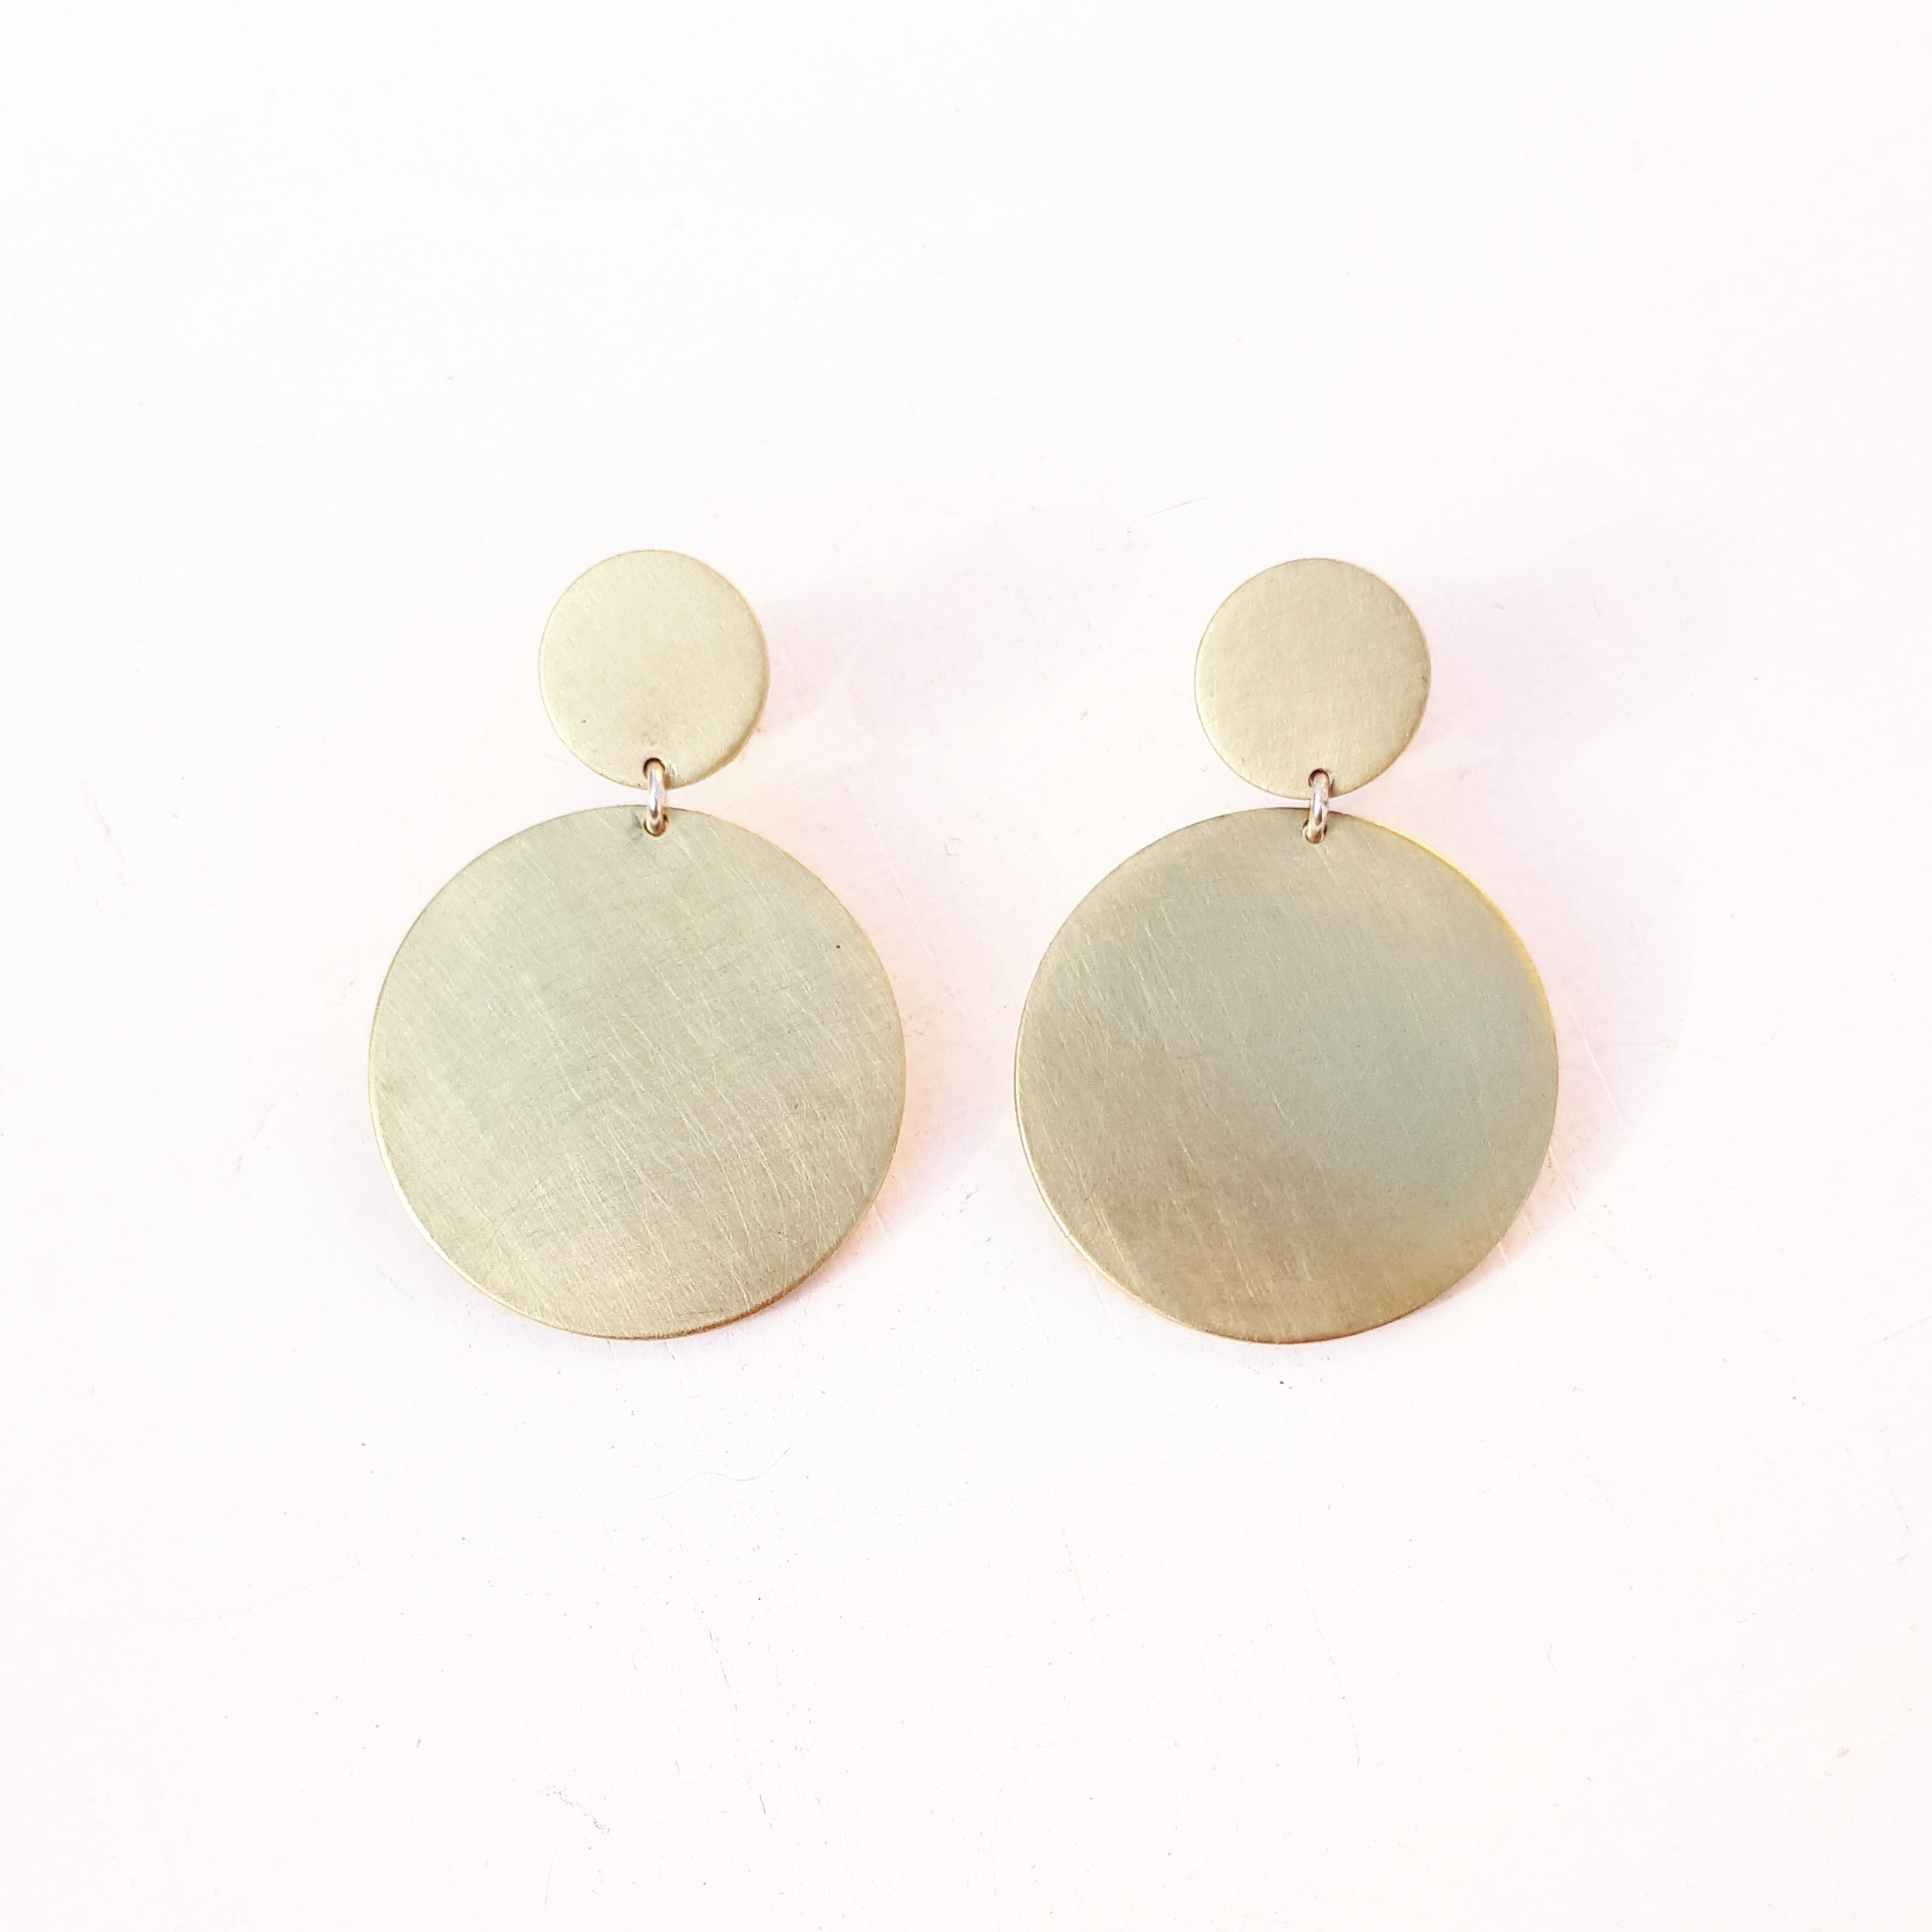 Emily Eliza Arlotte Handcrafted Fine Jewellery - Mother Earrings Circles Brass Gold